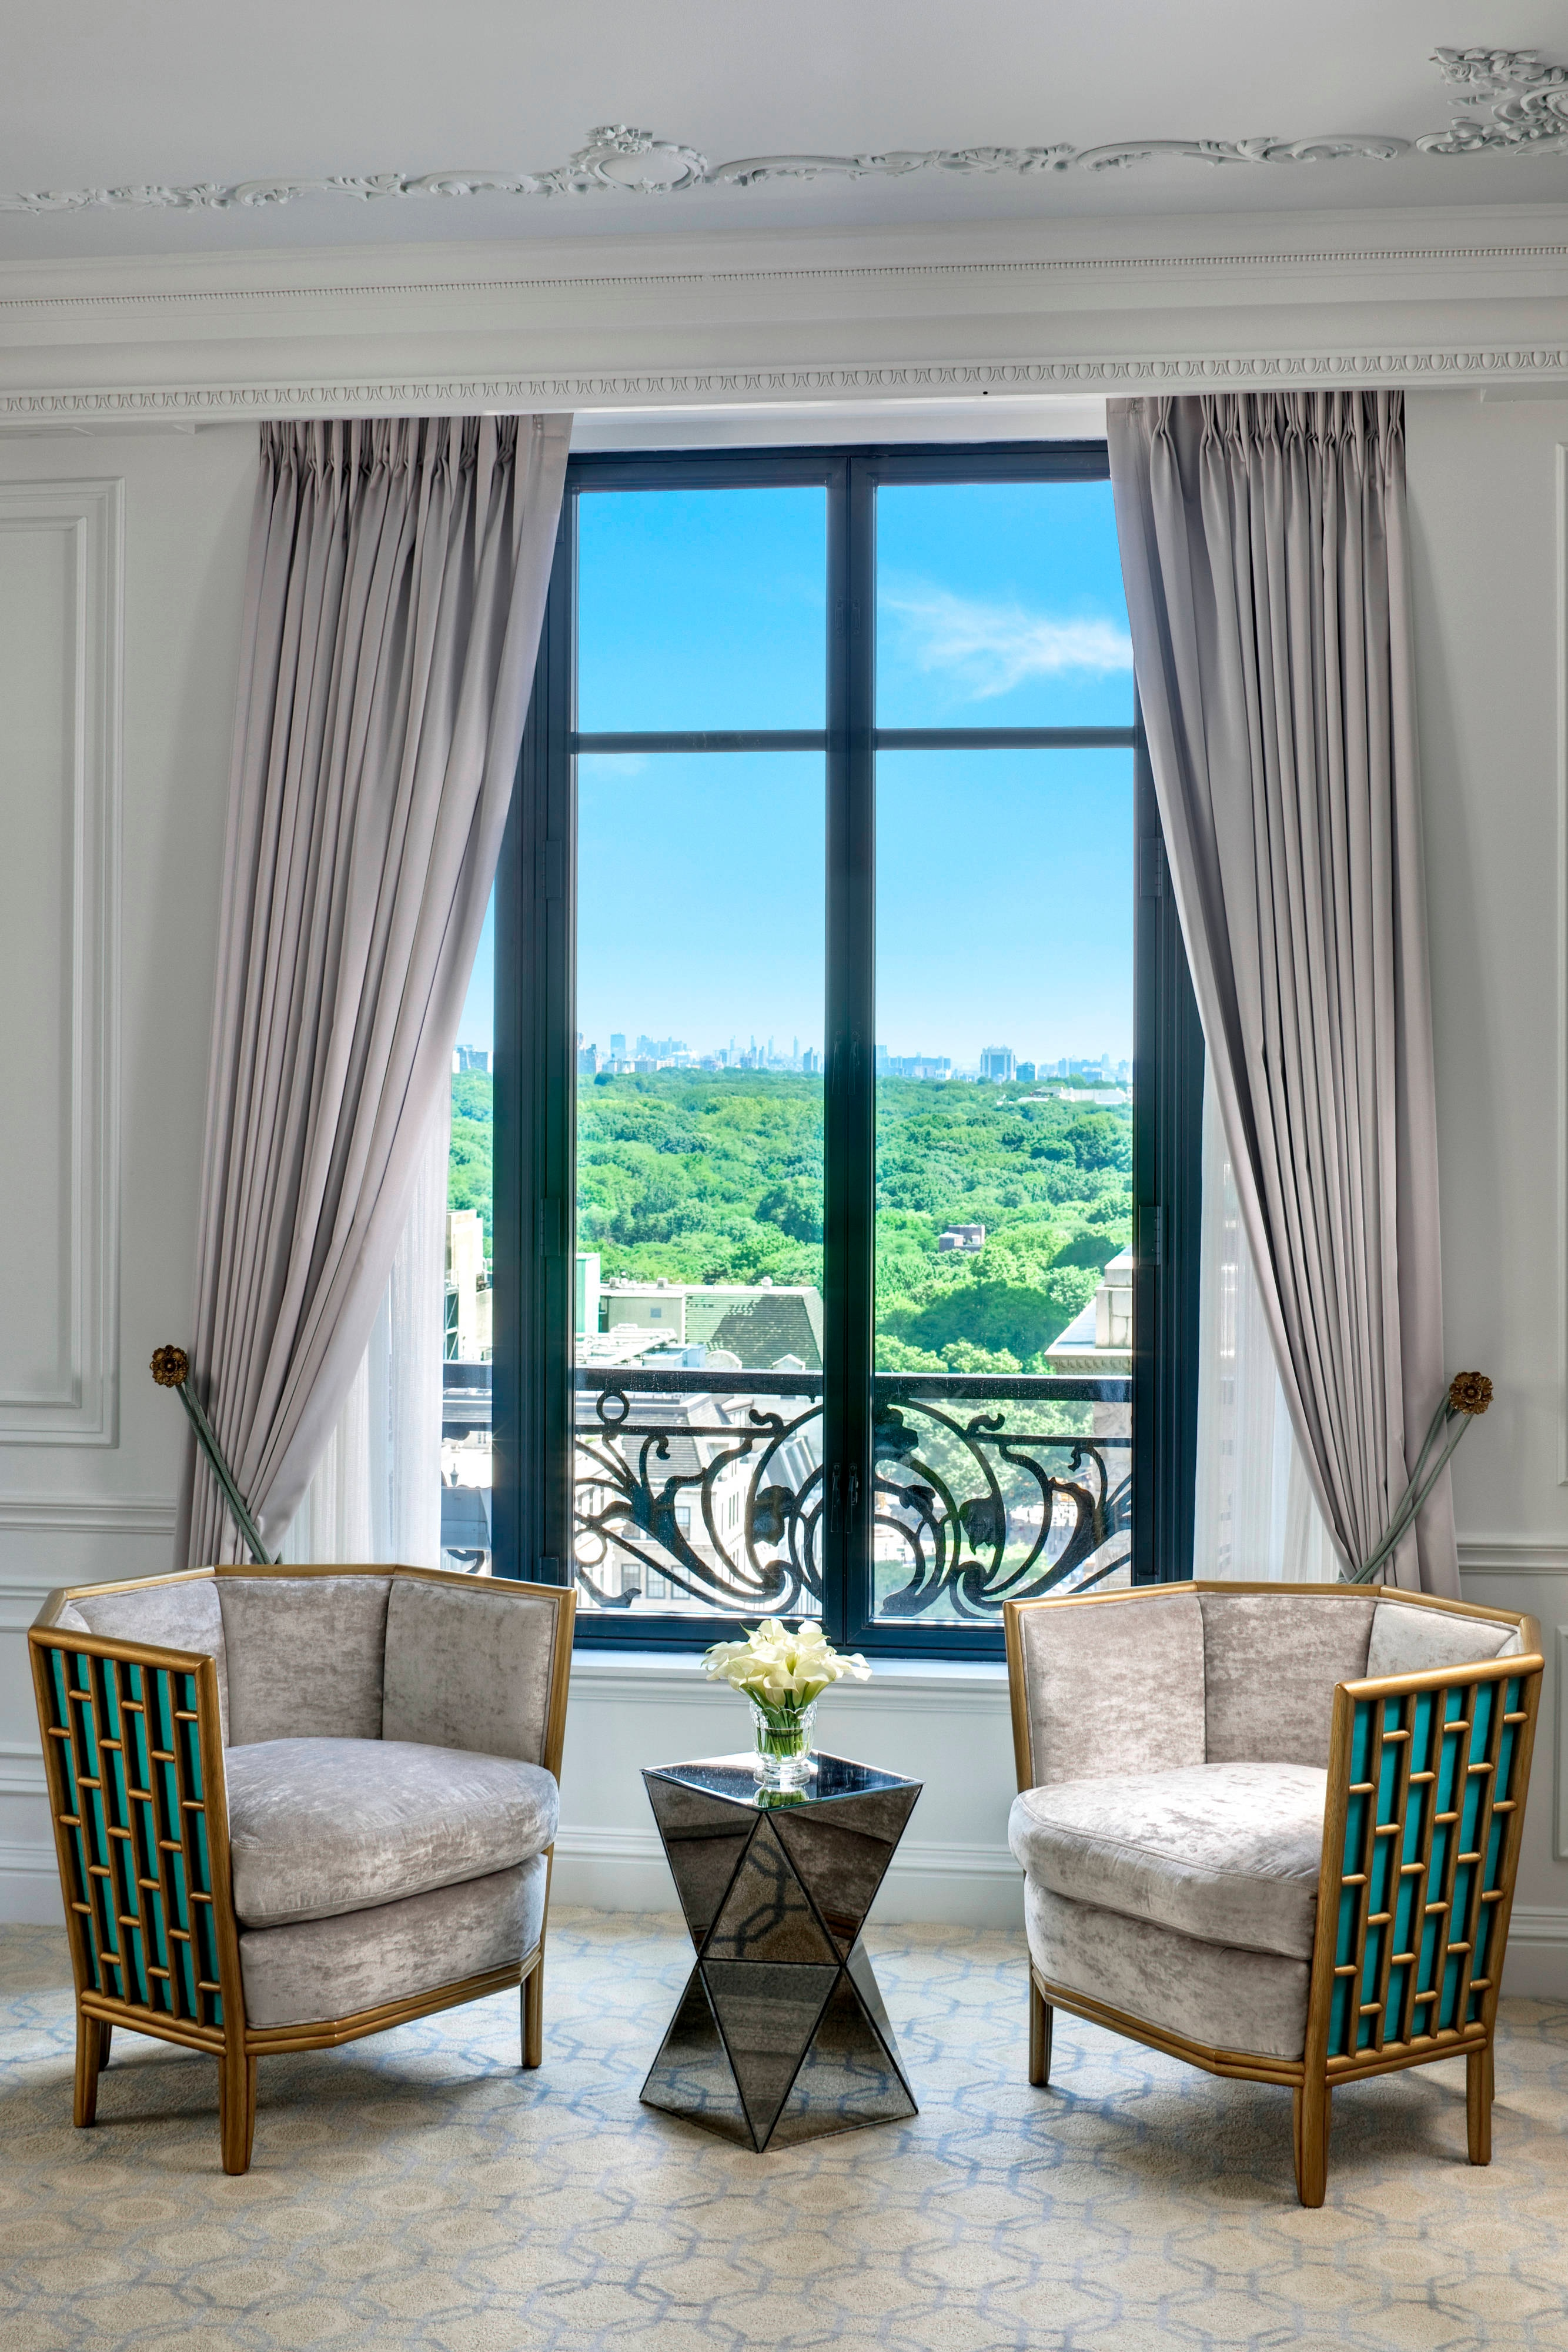 Tiffany Suite - Living Room with park View